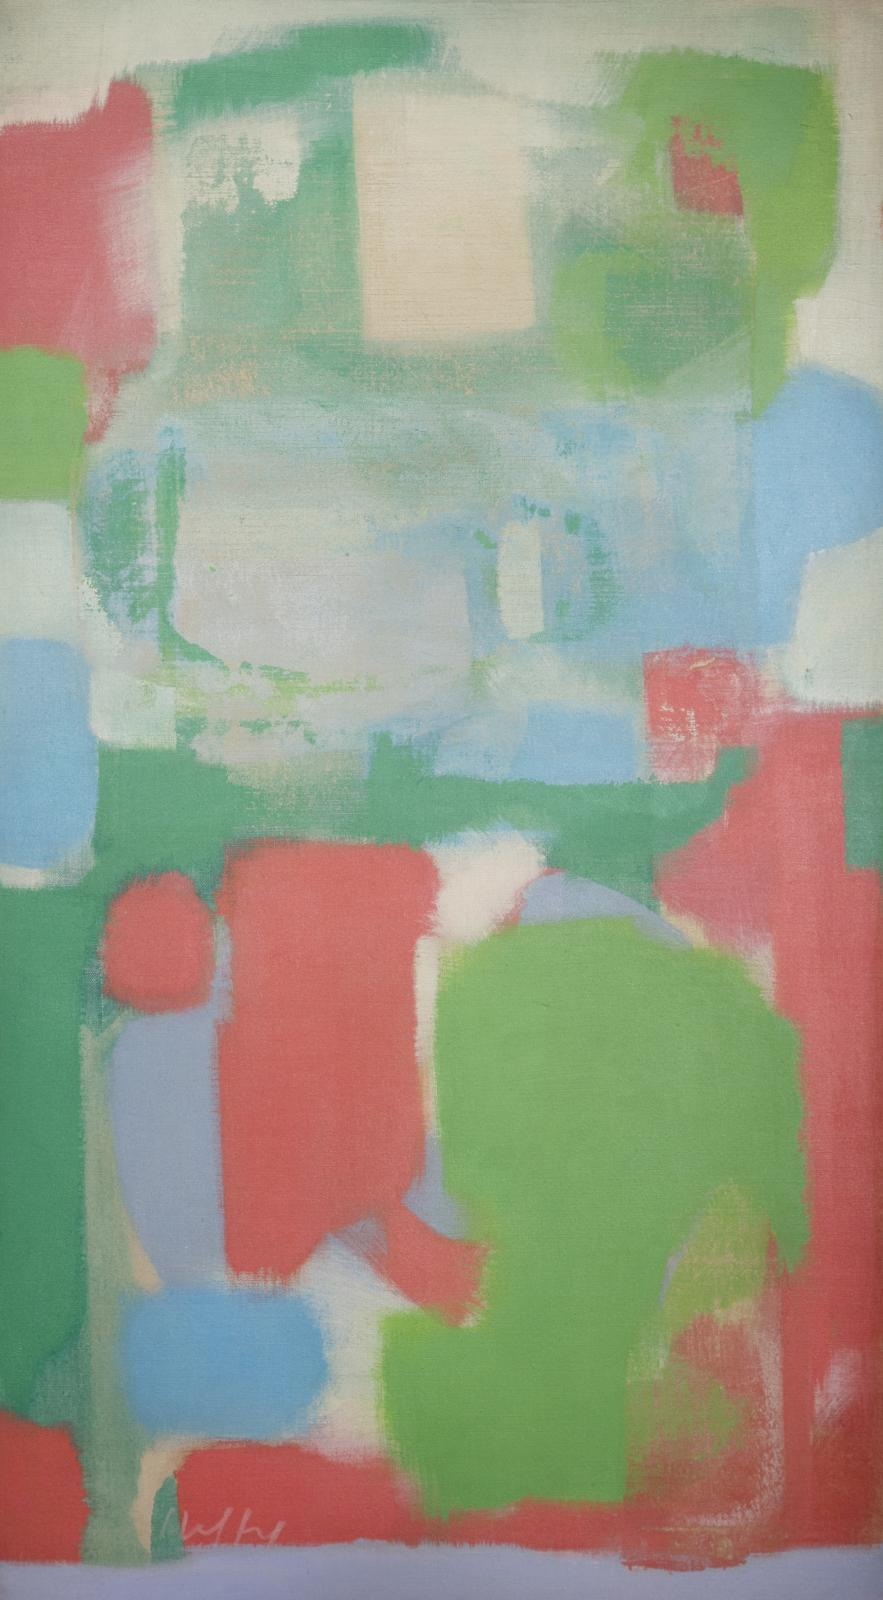 Untitled #168 (Green, Red)